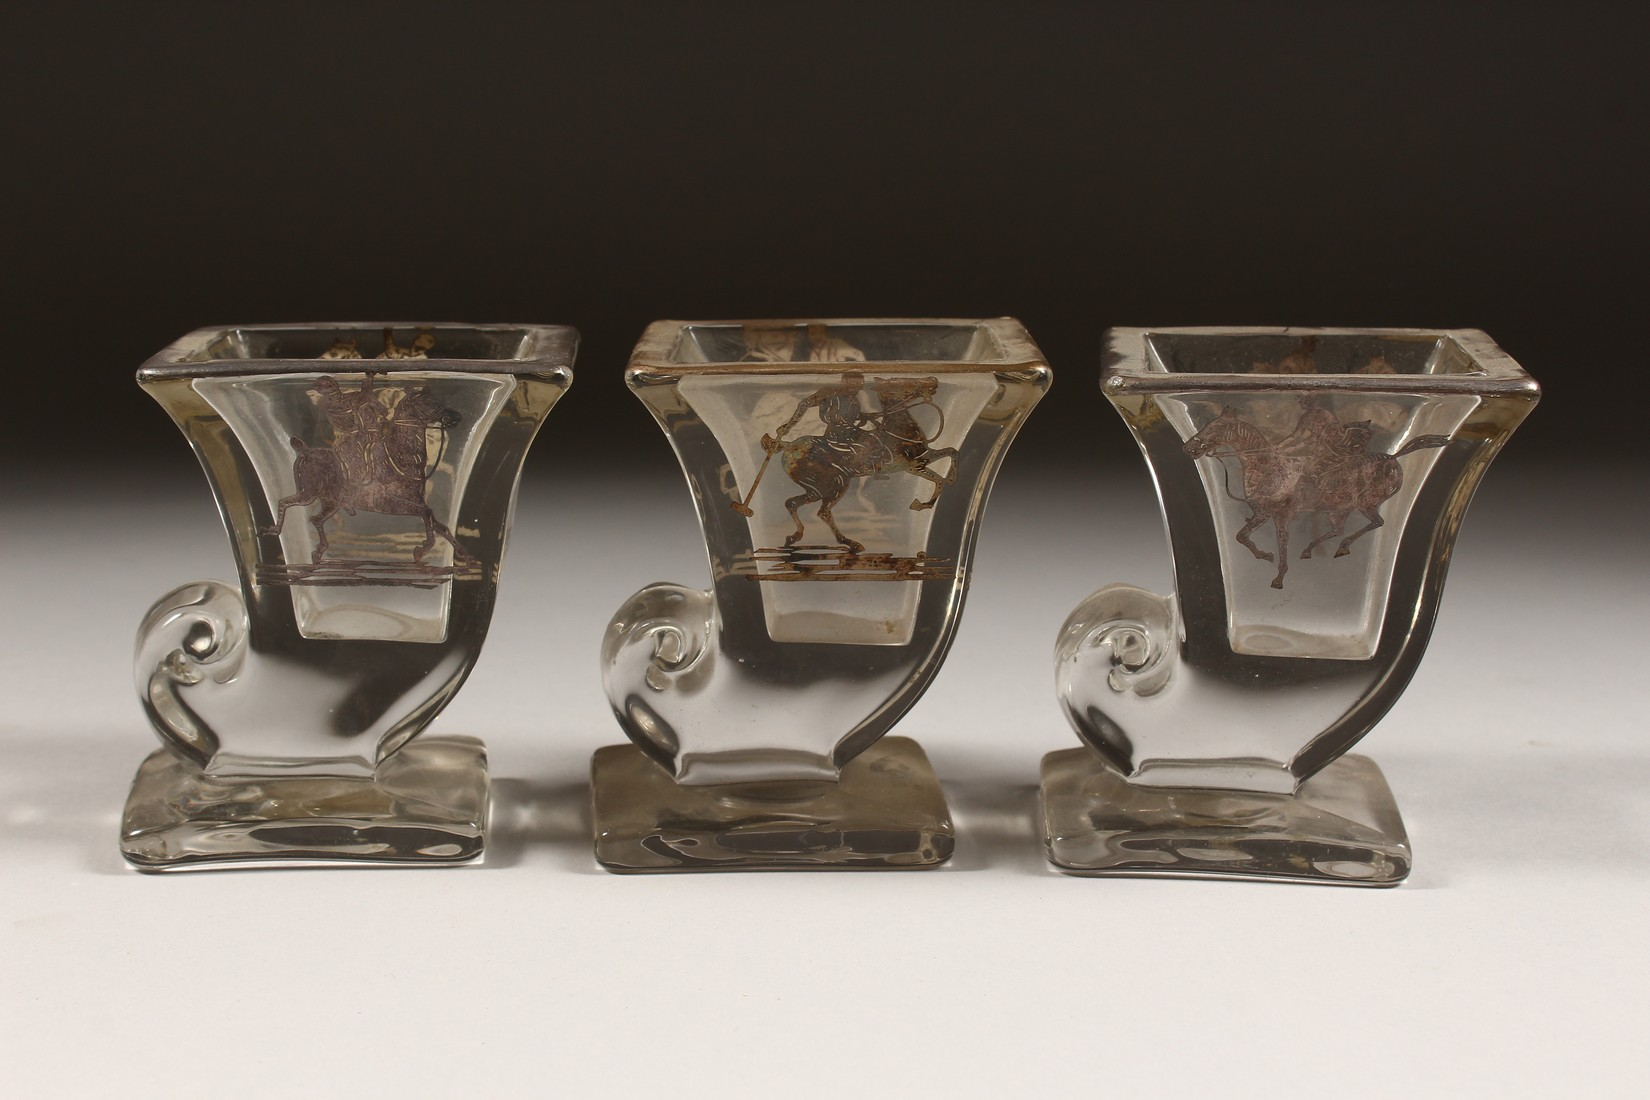 A SET OF THREE SILVER OVERLAY MOULDED GLASS SMALL VASES, decorated with polo players on horseback. - Image 3 of 5